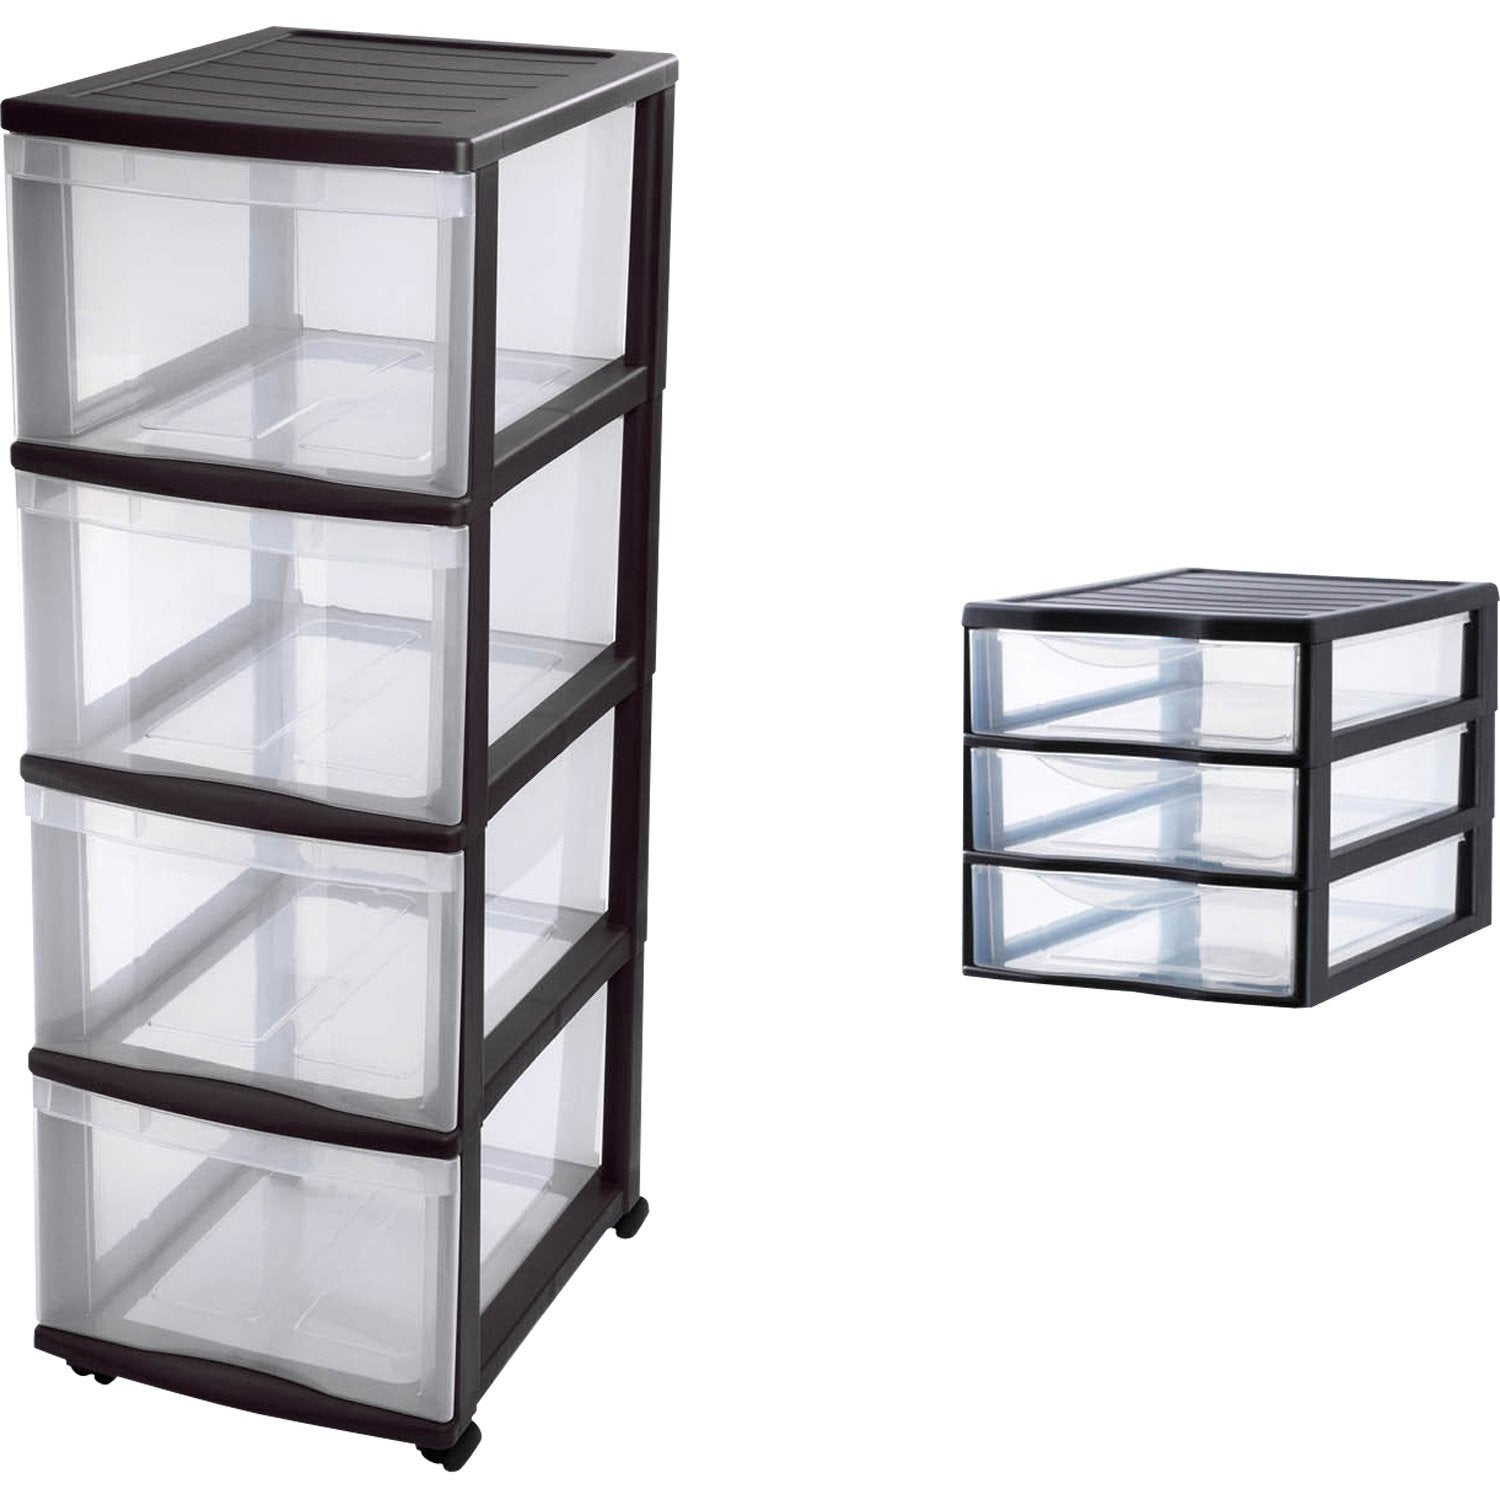 tour de rangement optimo plastique x x cm leroy merlin. Black Bedroom Furniture Sets. Home Design Ideas